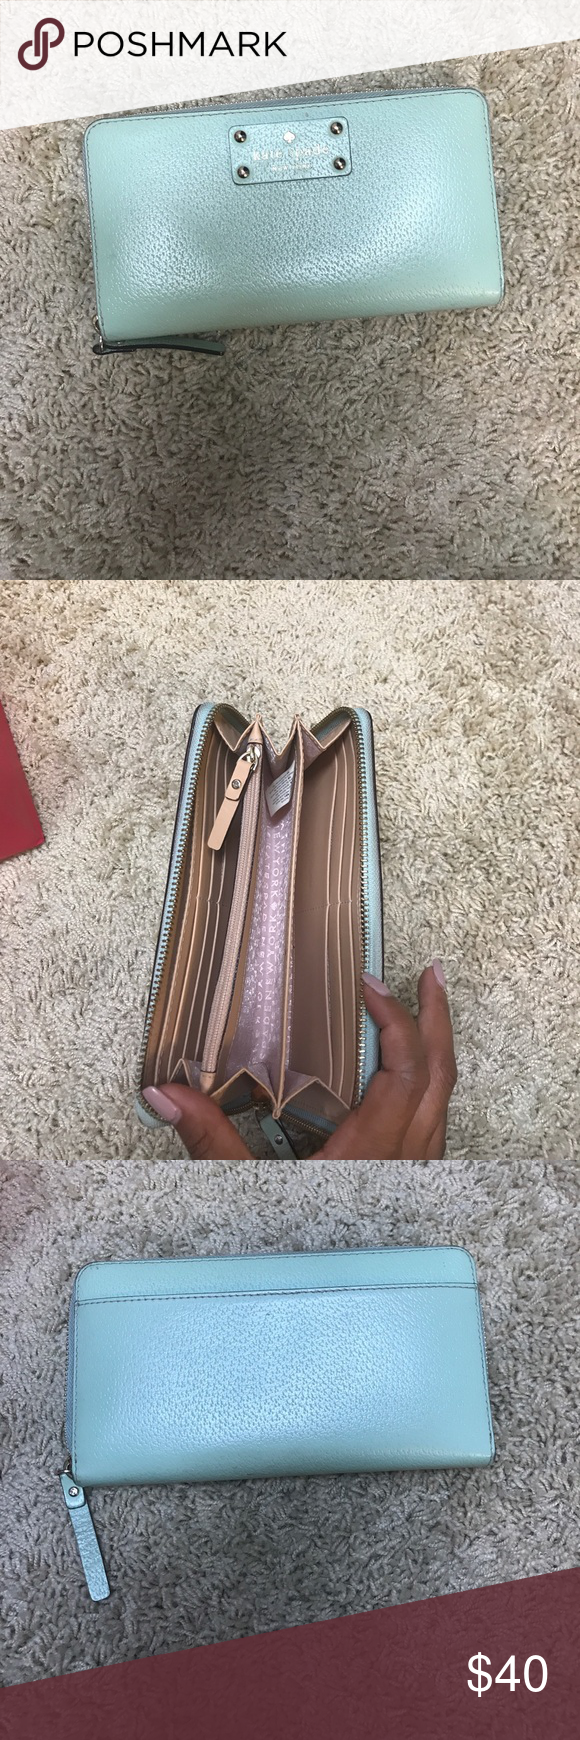 Kate spade wallet Zip up wallets lots of room has small signs of use but a lot of life left in it kate spade Bags Wallets